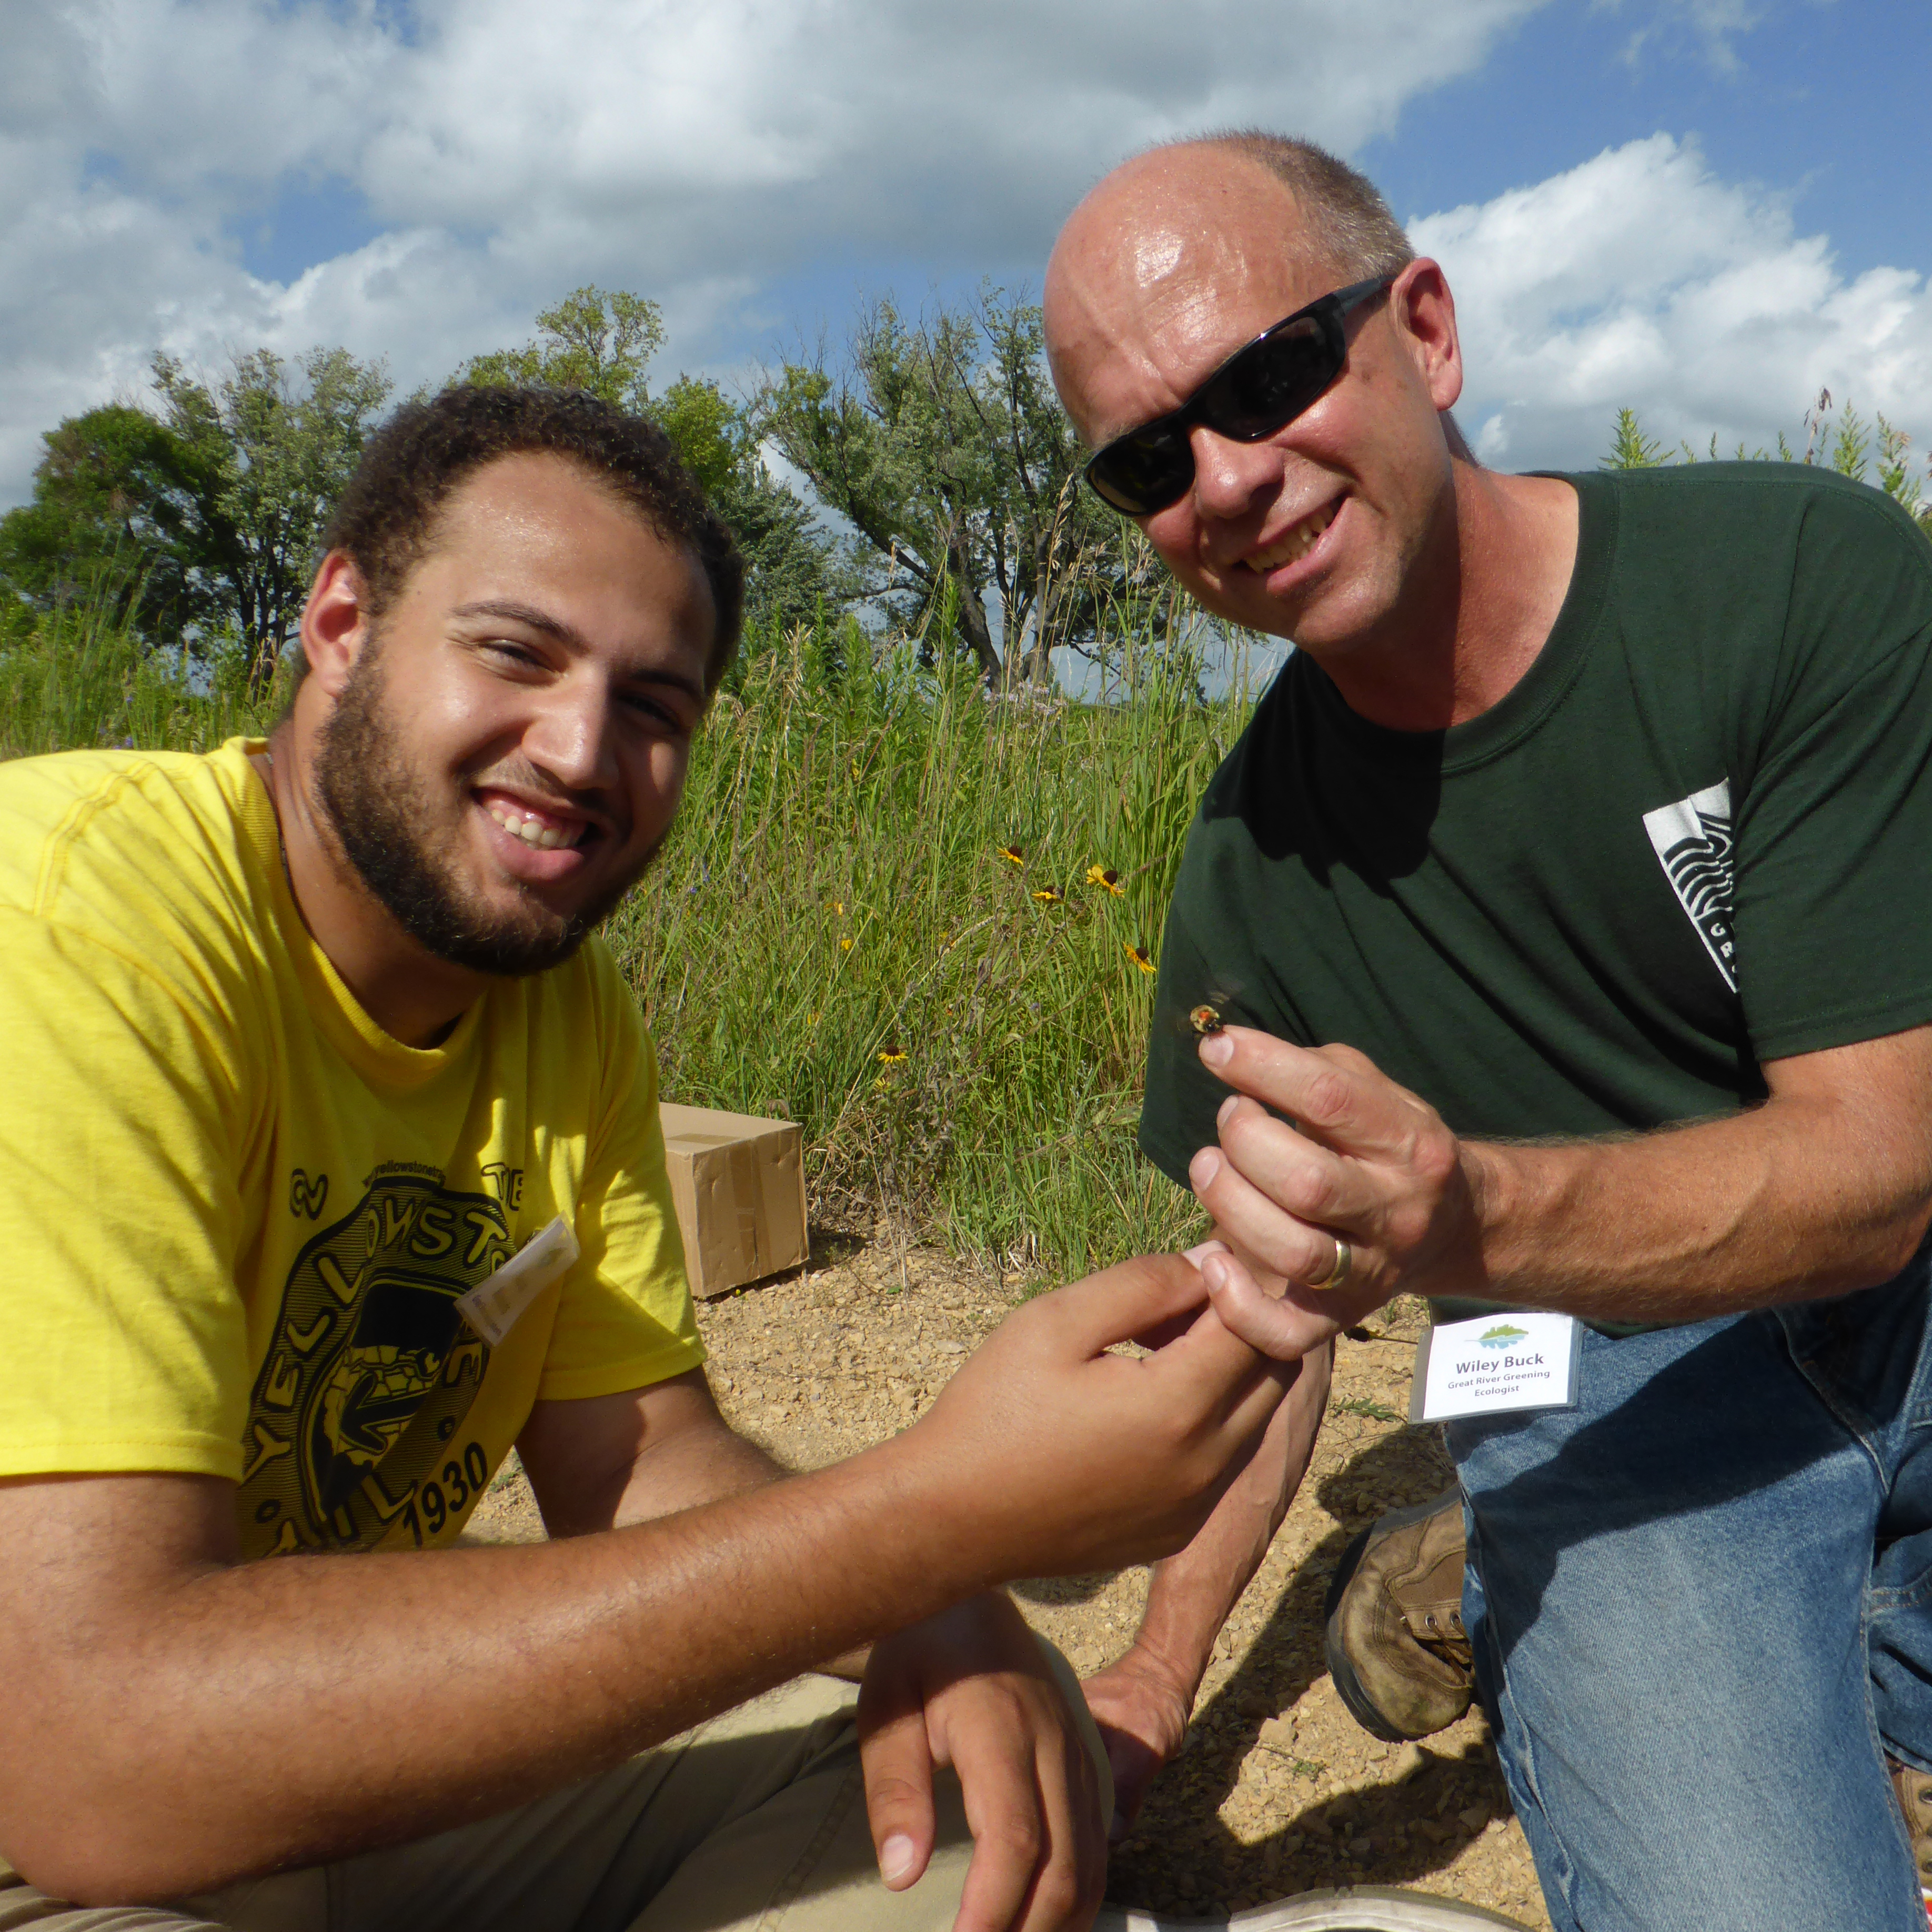 Two people, one a young man with dark skin, and one an older man with pale skin, have their hands close together as they show off a bumble bee they caught as part of a community science effort.